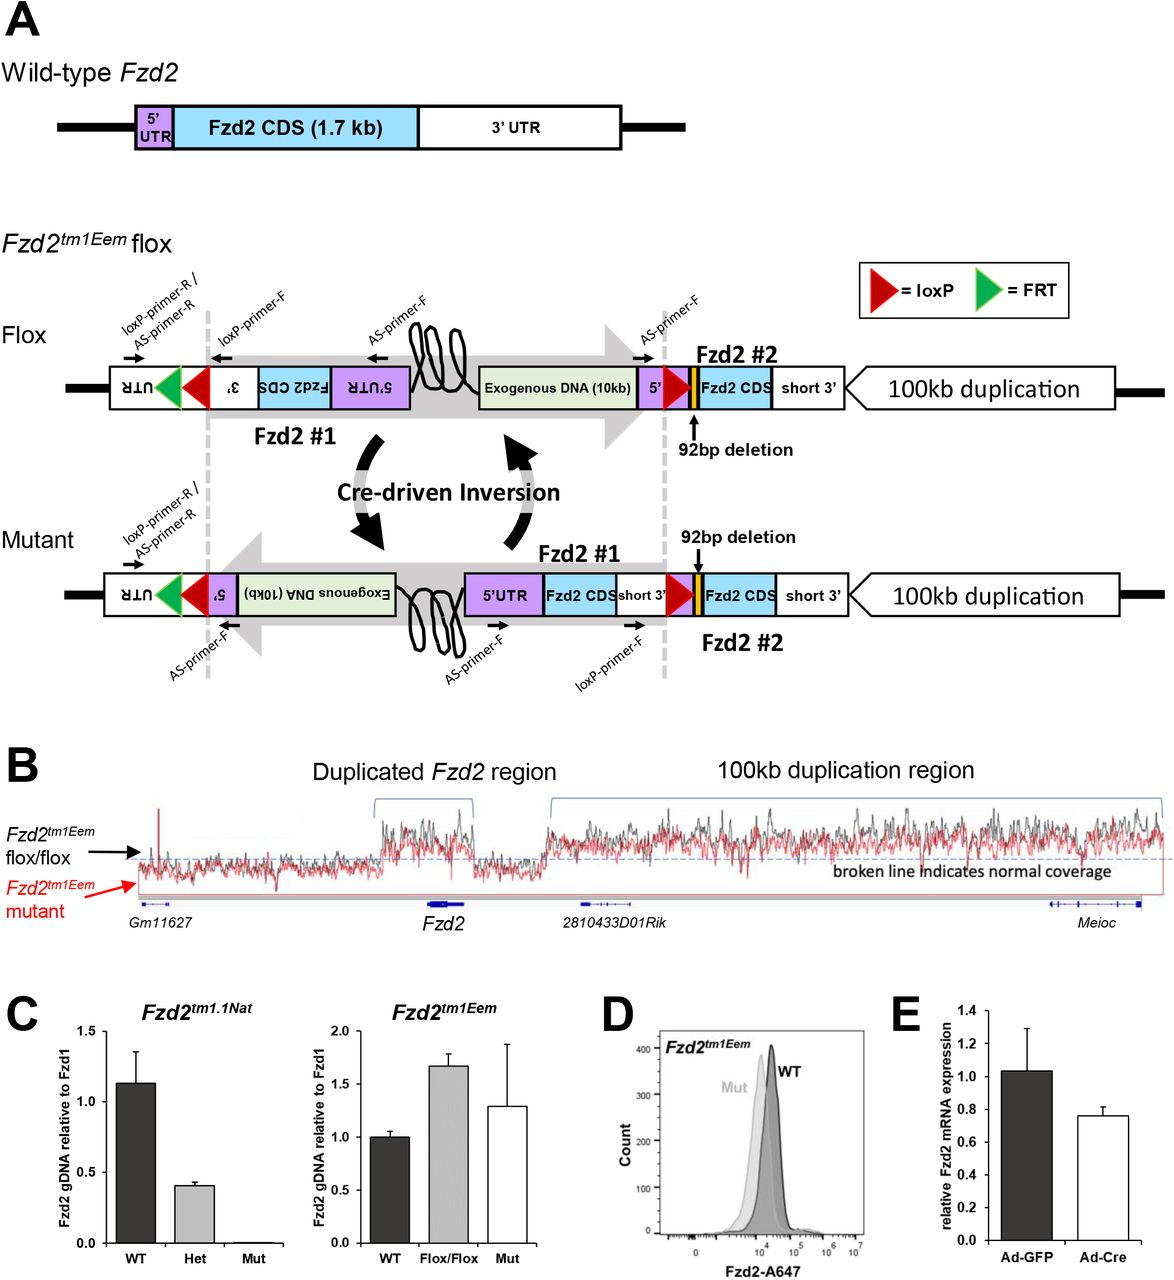 """The published Fzd2 tm1Eem flox allele is a complex genomic alteration. A. Maps detailing our working model of the Fzd2 tm1Eem flox allele. A wild-type Fzd2 gene structure is shown, with 5'UTR in purple, CDS in blue, and 3'UTR in white. The Fzd2 tm1Eem flox allele contains a duplication of Fzd2, resulting in two copies (blue). There is 10 kb of exogenous DNA (bacterial gDNA and targeting plasmid PL253 sequence, light green) in between the two copies of Fzd2. """"Fzd2 #1"""" contains the 3' loxP insertion but not 5' loxP . """"Fzd2 #2"""" contains 5' loxP insertion as well as a 92bp deletion (orange) downstream of the 5' loxP insertion site and immediately upstream of the Fzd2 start sequence. """"Fzd2 #2"""" has a shortened 3' UTR that is connected to an inverted 100 kb sequence downstream of the Fzd2 gene (refer to Supplemental Figure 1A for more details). The sequence between the two Fzd2 copies is of unknown length and denoted by a black curved lined (refer to Supplemental Figure 1B for more details). Because we cannot confirm the orientations of the two loxP sites within the two Fzd2 copies due to the long sequence between the two Fzd2 copies, we hypothesize cre-driven recombination results in continuous sequence inversion between the two loxP sites due to the opposite loxP orientations (refer to Discussion for more details). B . The IGV coverage tracks of Fzd2 tm1Eem flox/flox and homozygous global mutant WGS reads were merged to show no Fzd2 or other genomic DNA deletion after Cre exposure. C . Real-time quantitative PCR on genomic DNA shows a 50% decrease in Fzd2 gene content in Fzd2 tm1 . 1Nat heterozygotes and no Fzd2 gene content in homozygous mutants (primer targeting the N-terminal region). The Fzd2 tm1Eem display a ∼2-fold increase in Fzd2 gene content in flox/flox and ∼ homozygous mutant (Mut) samples, which supports Fzd2 being duplicated and loxP sites being in opposite orientations. D . FZD2 flow cytometric analysis of E14.5 limb buds from wild-type (WT) or mice homozyg"""